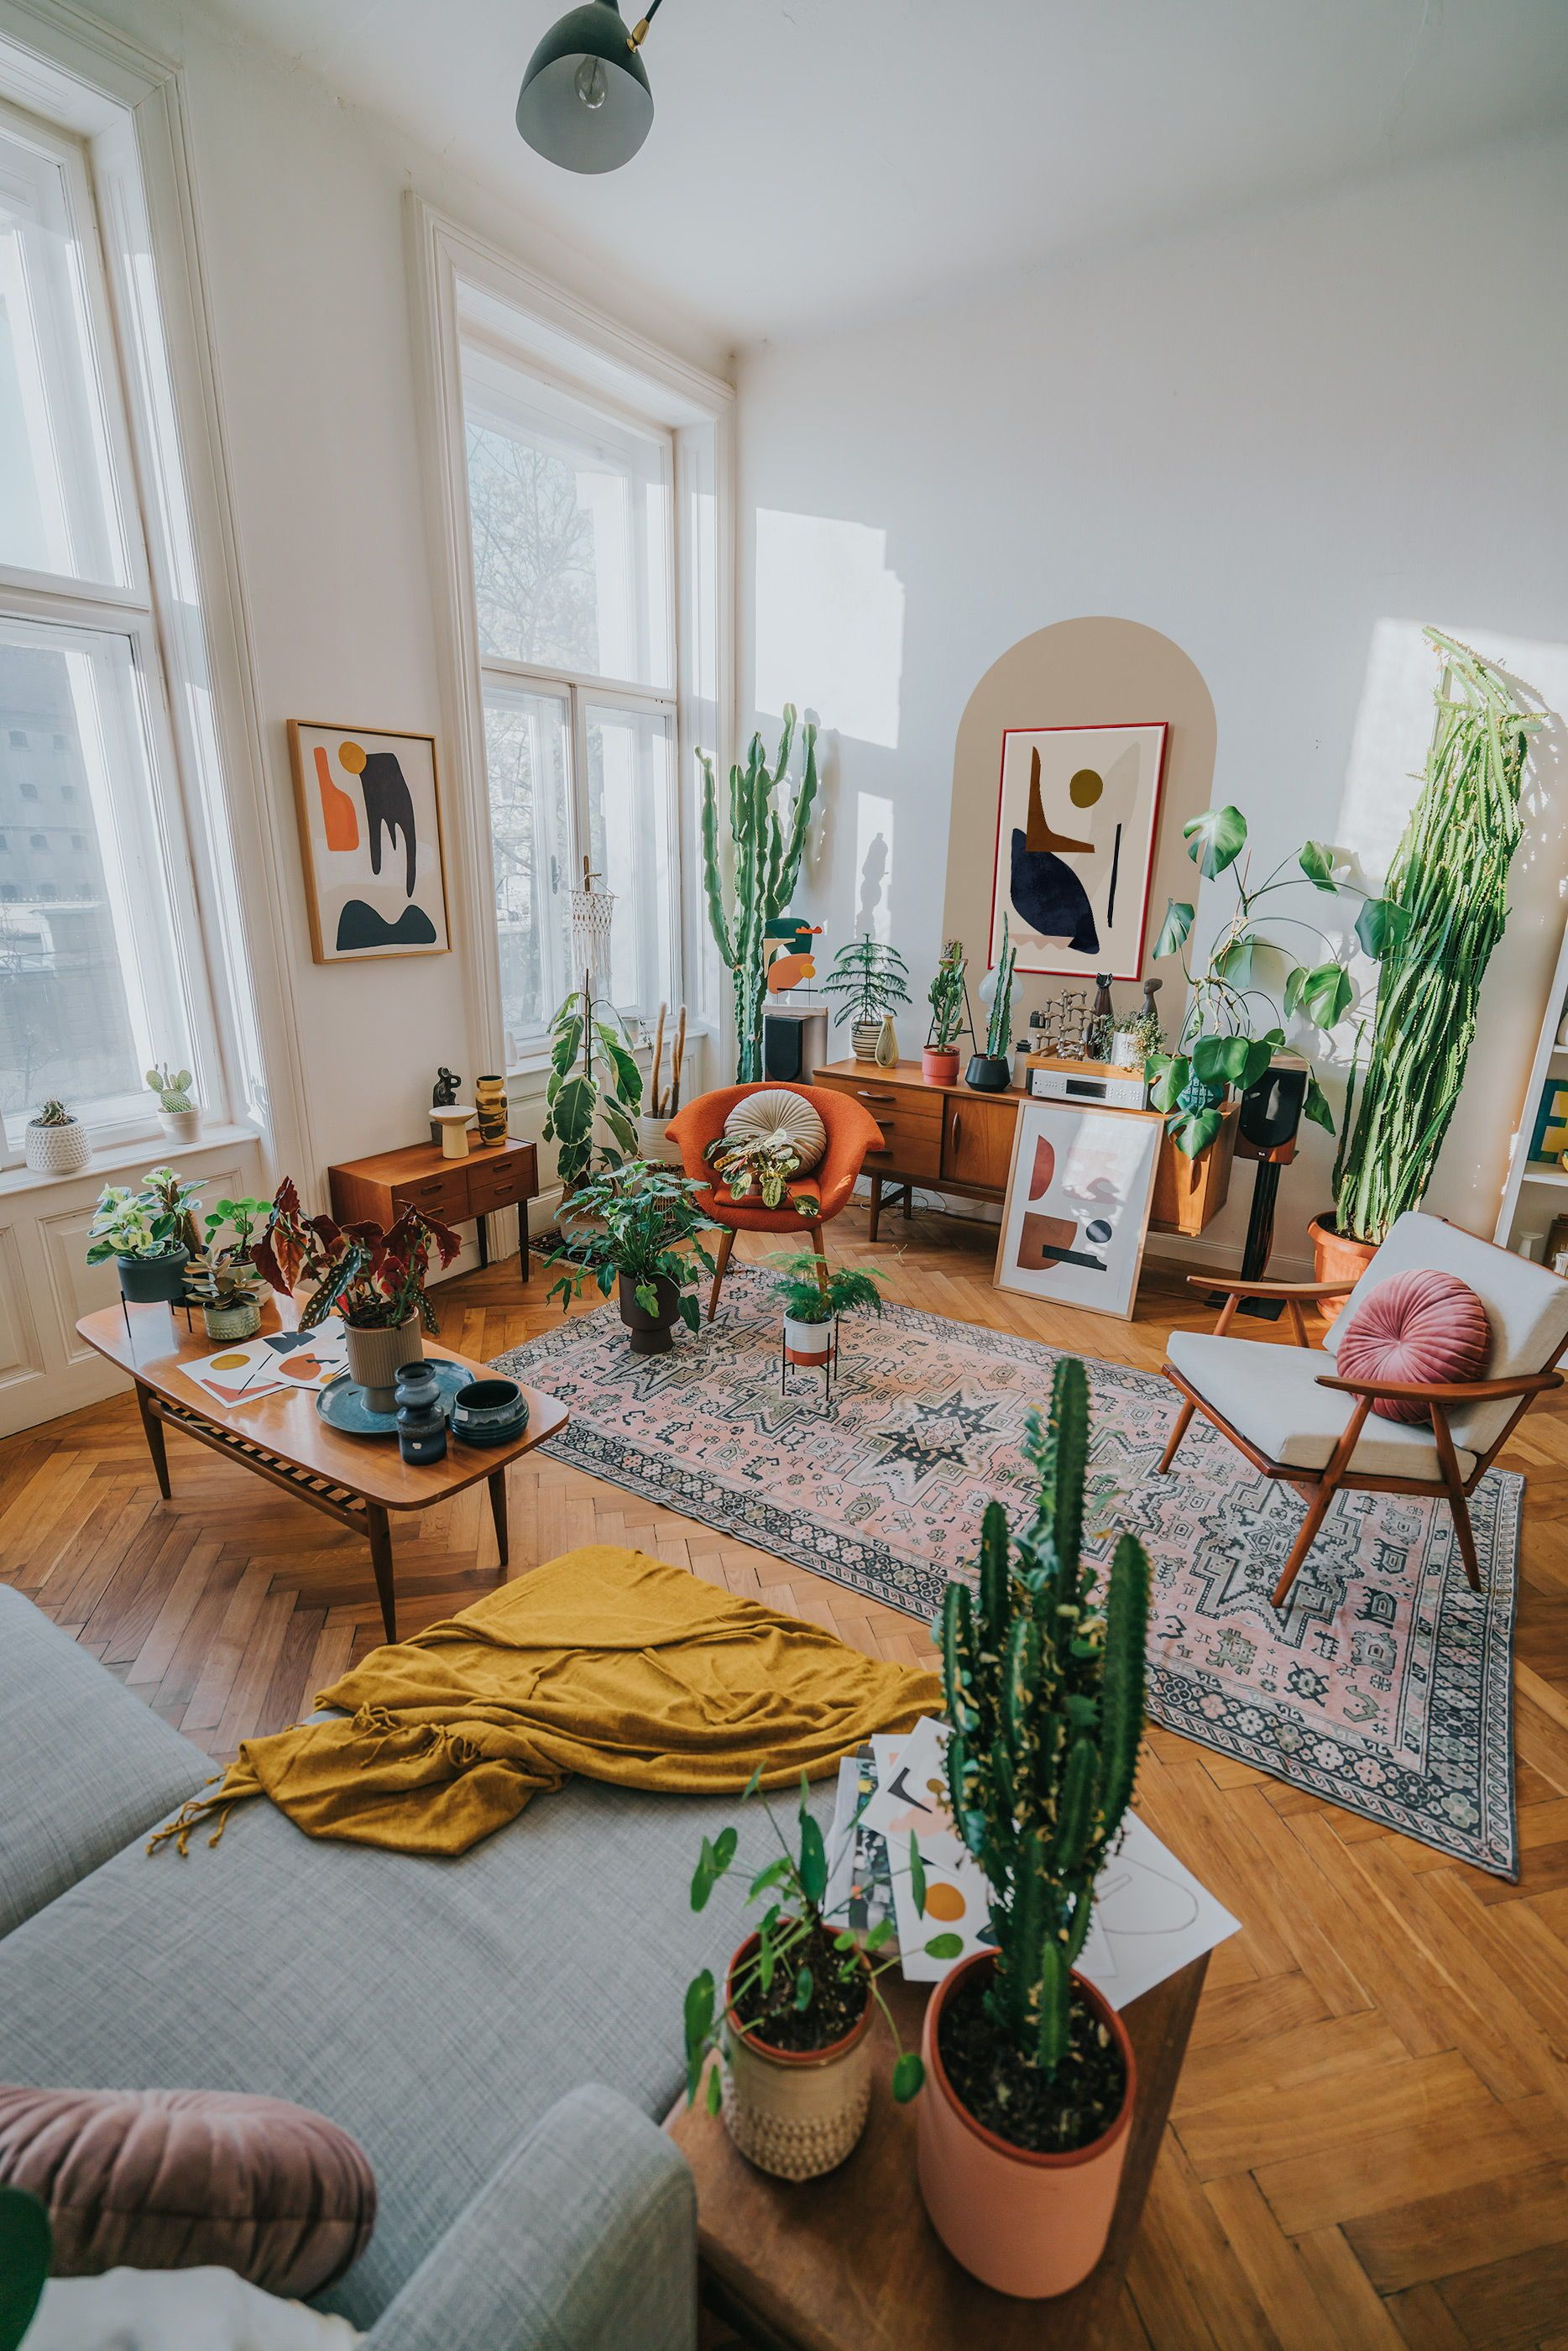 Photo of Artful bright interior with modern art, plants and retro furniture